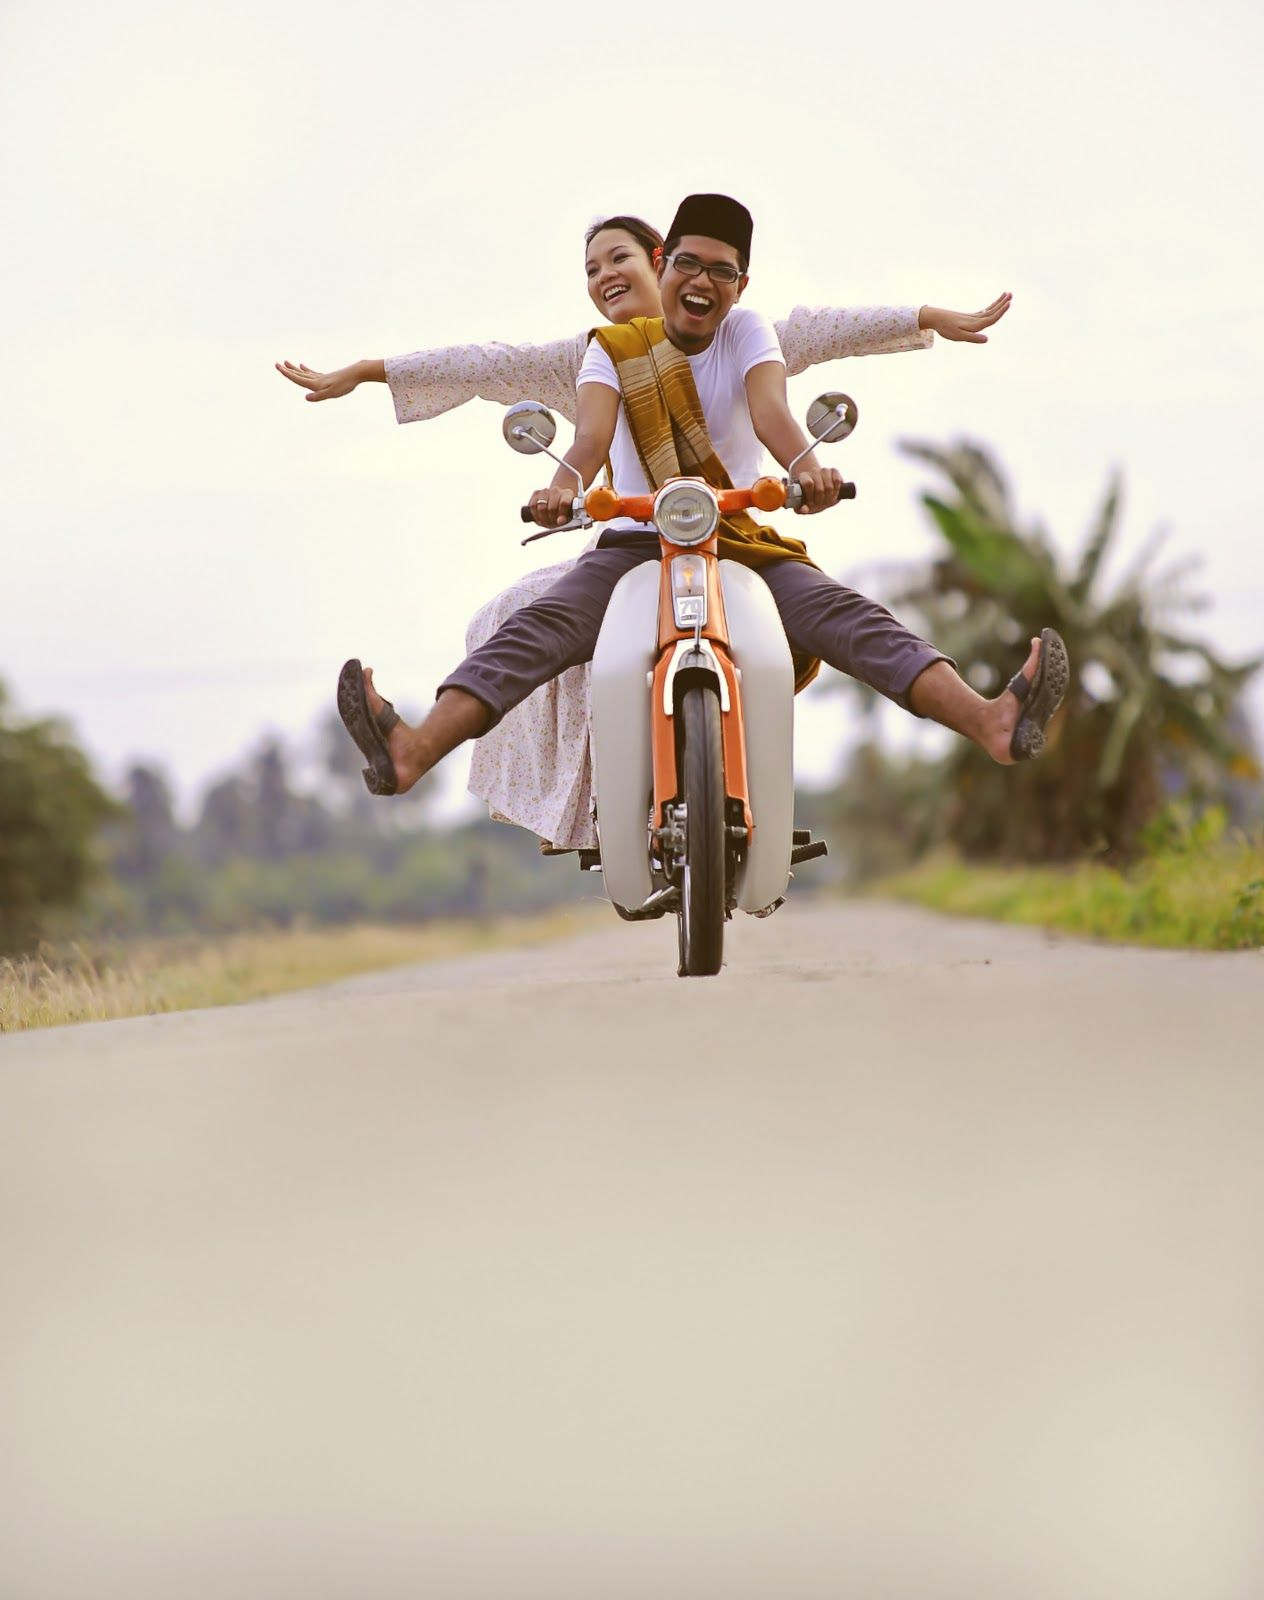 Indonesian oldies style pre wed photo Him & Her